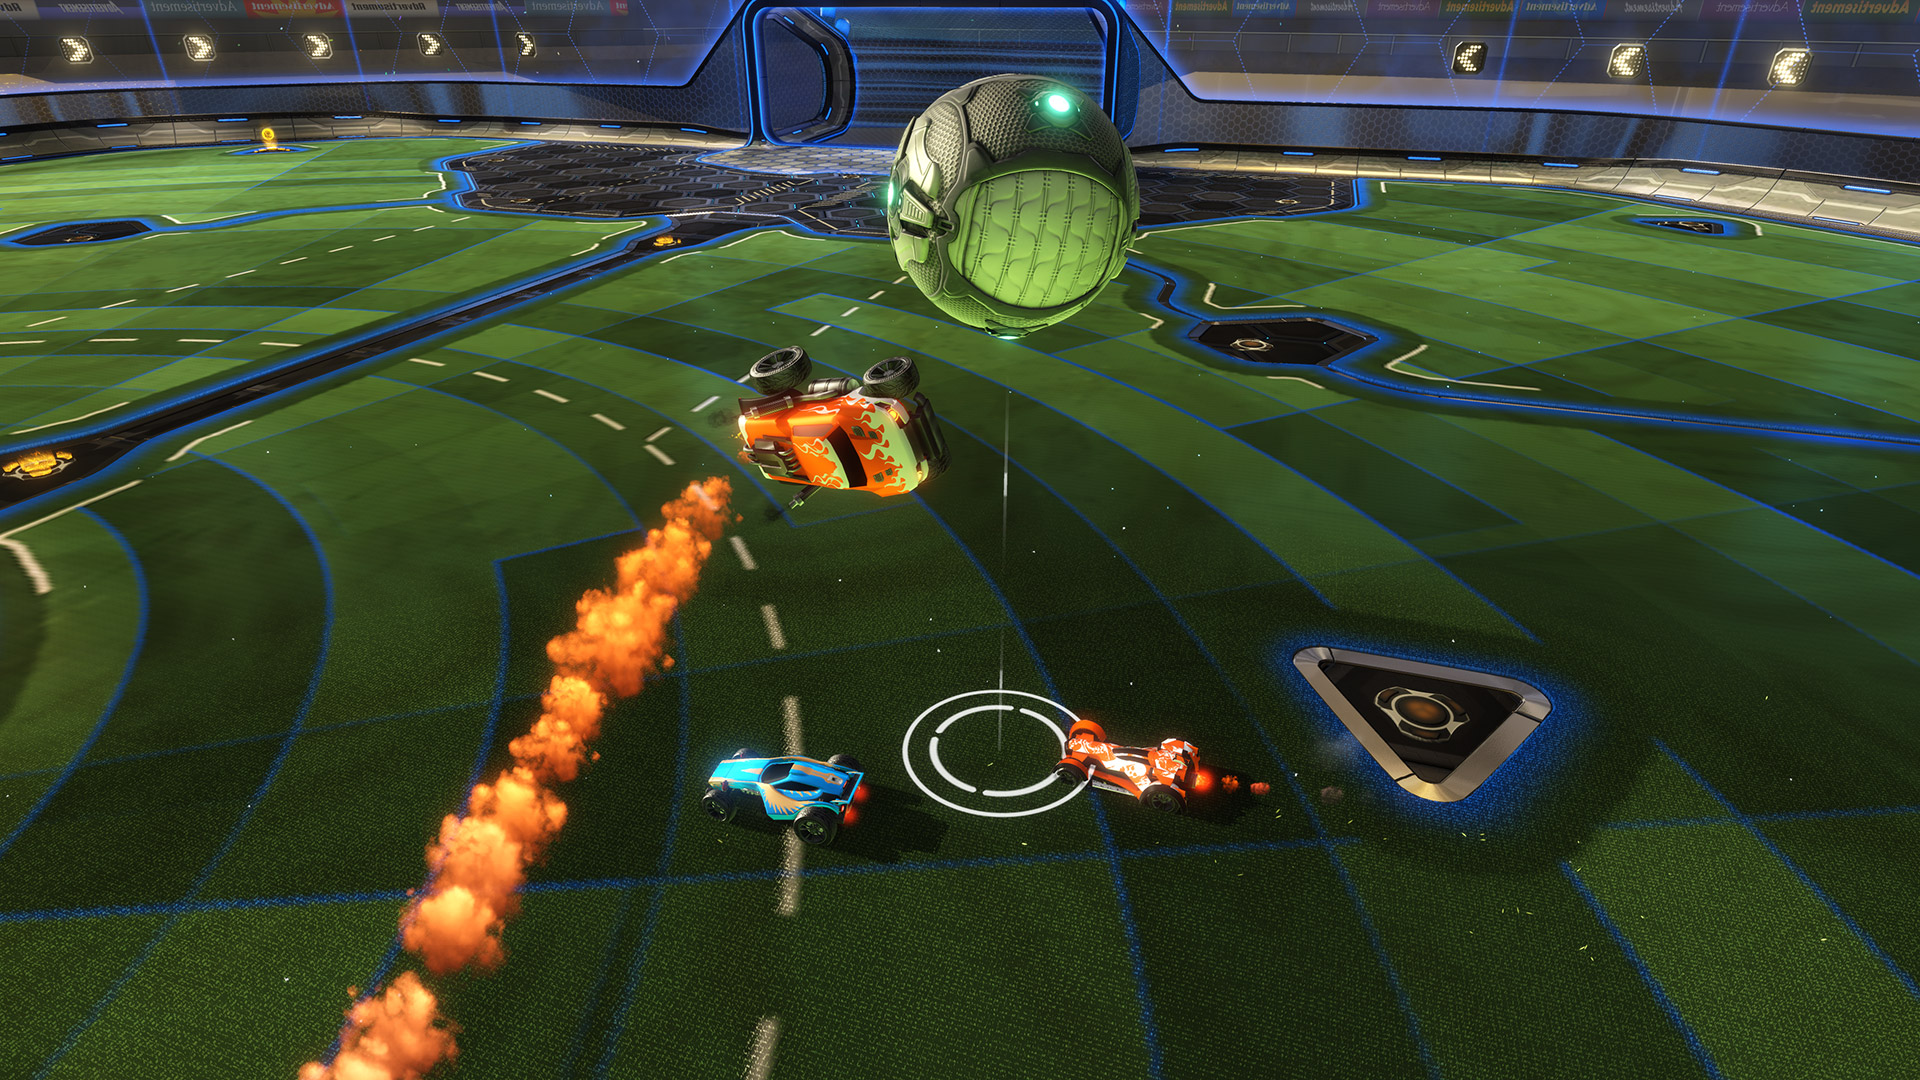 Screenshot from Psyonix